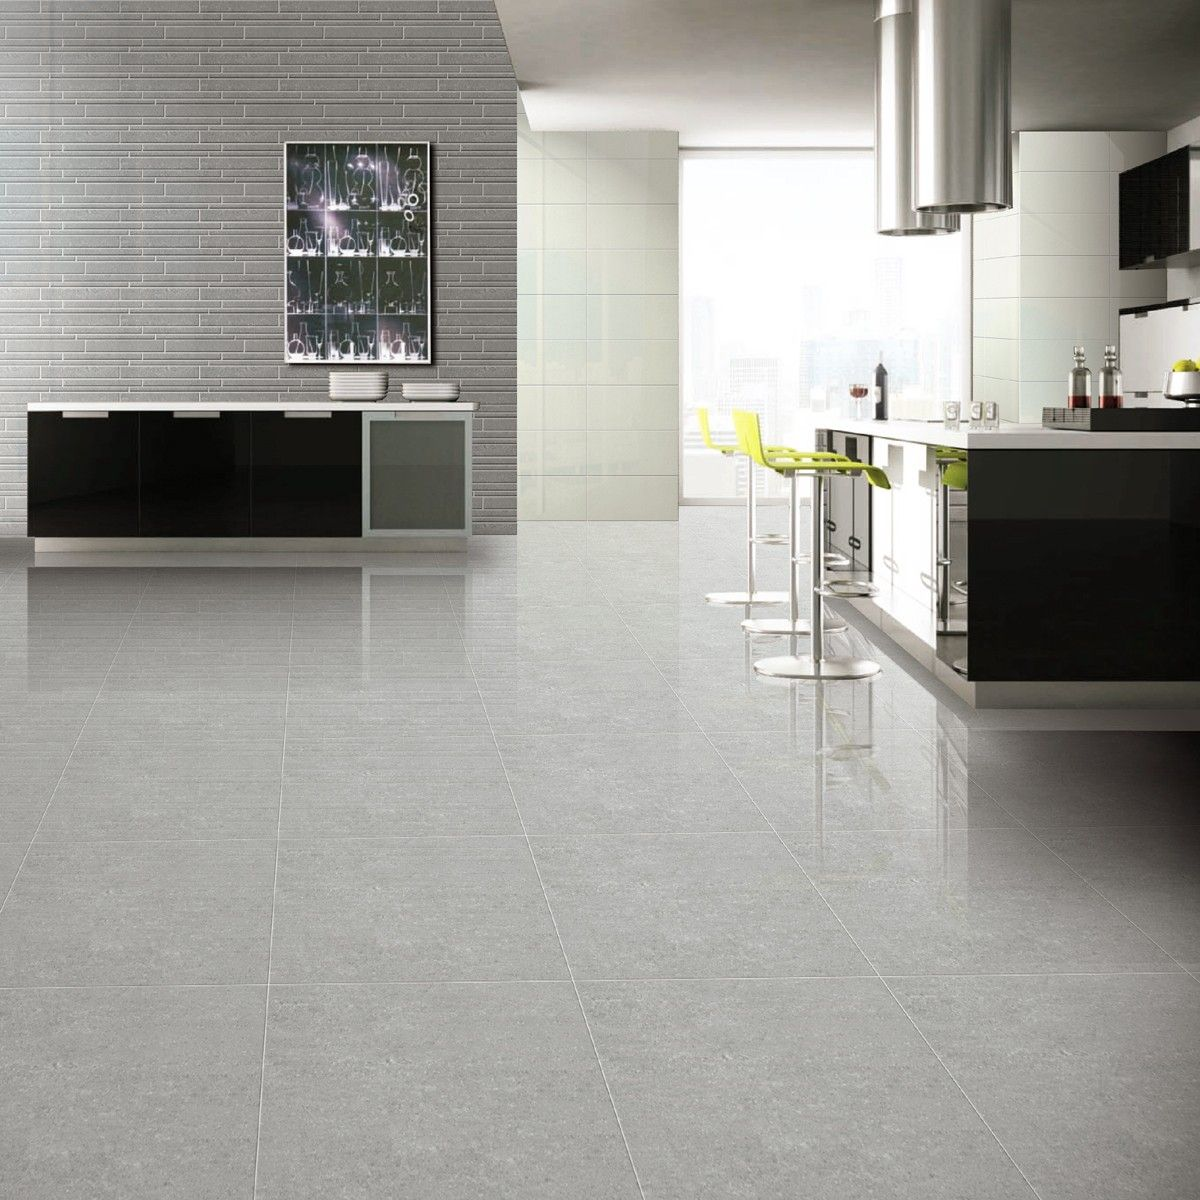 Porcelain kitchen floor tile - 60x60 Super Polished Grey Porcelain Floor Tiles Tile Choice